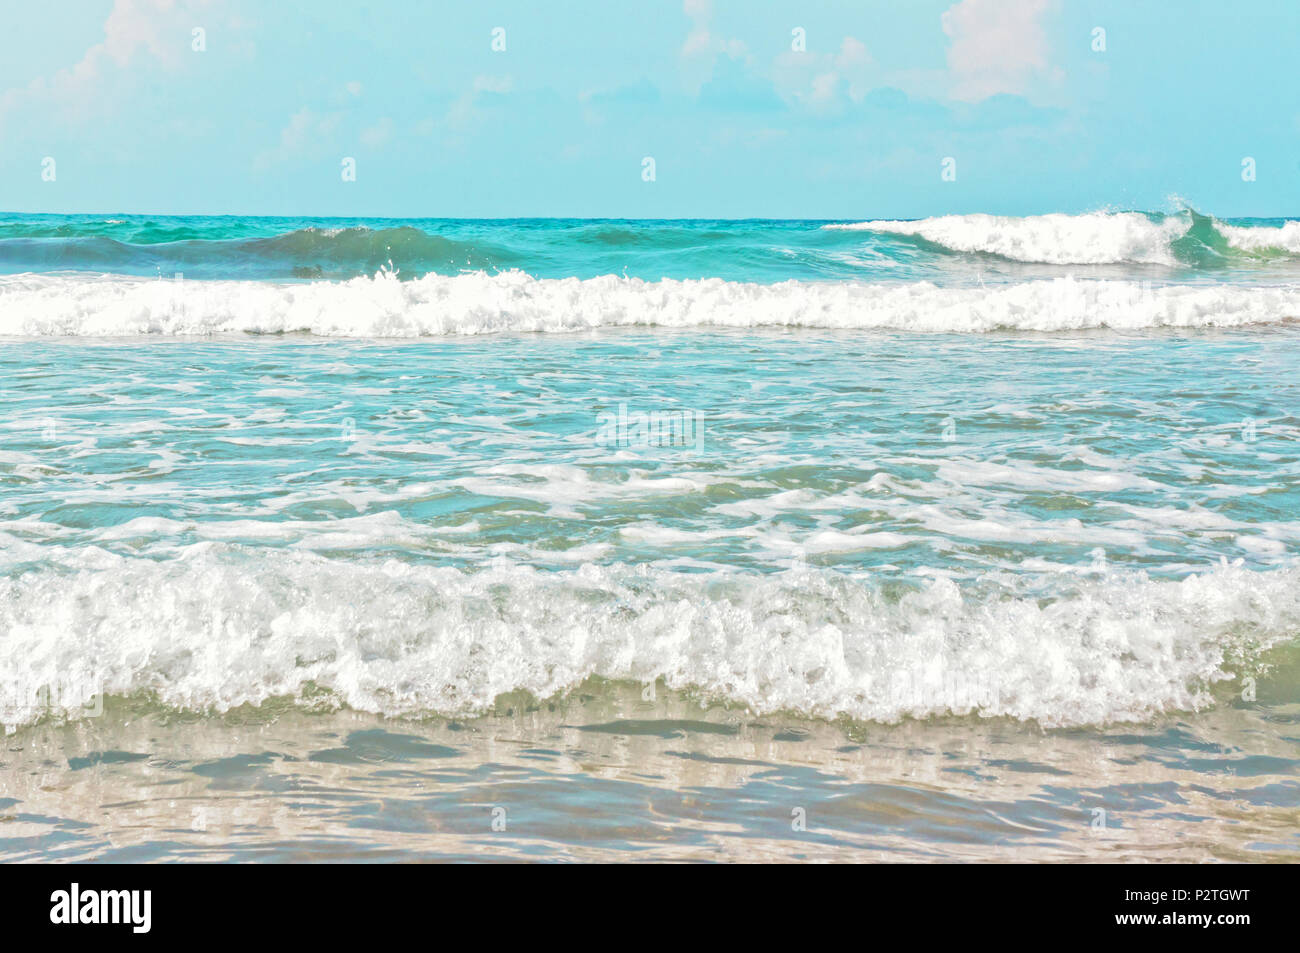 Sea with the foamy waves - Stock Image